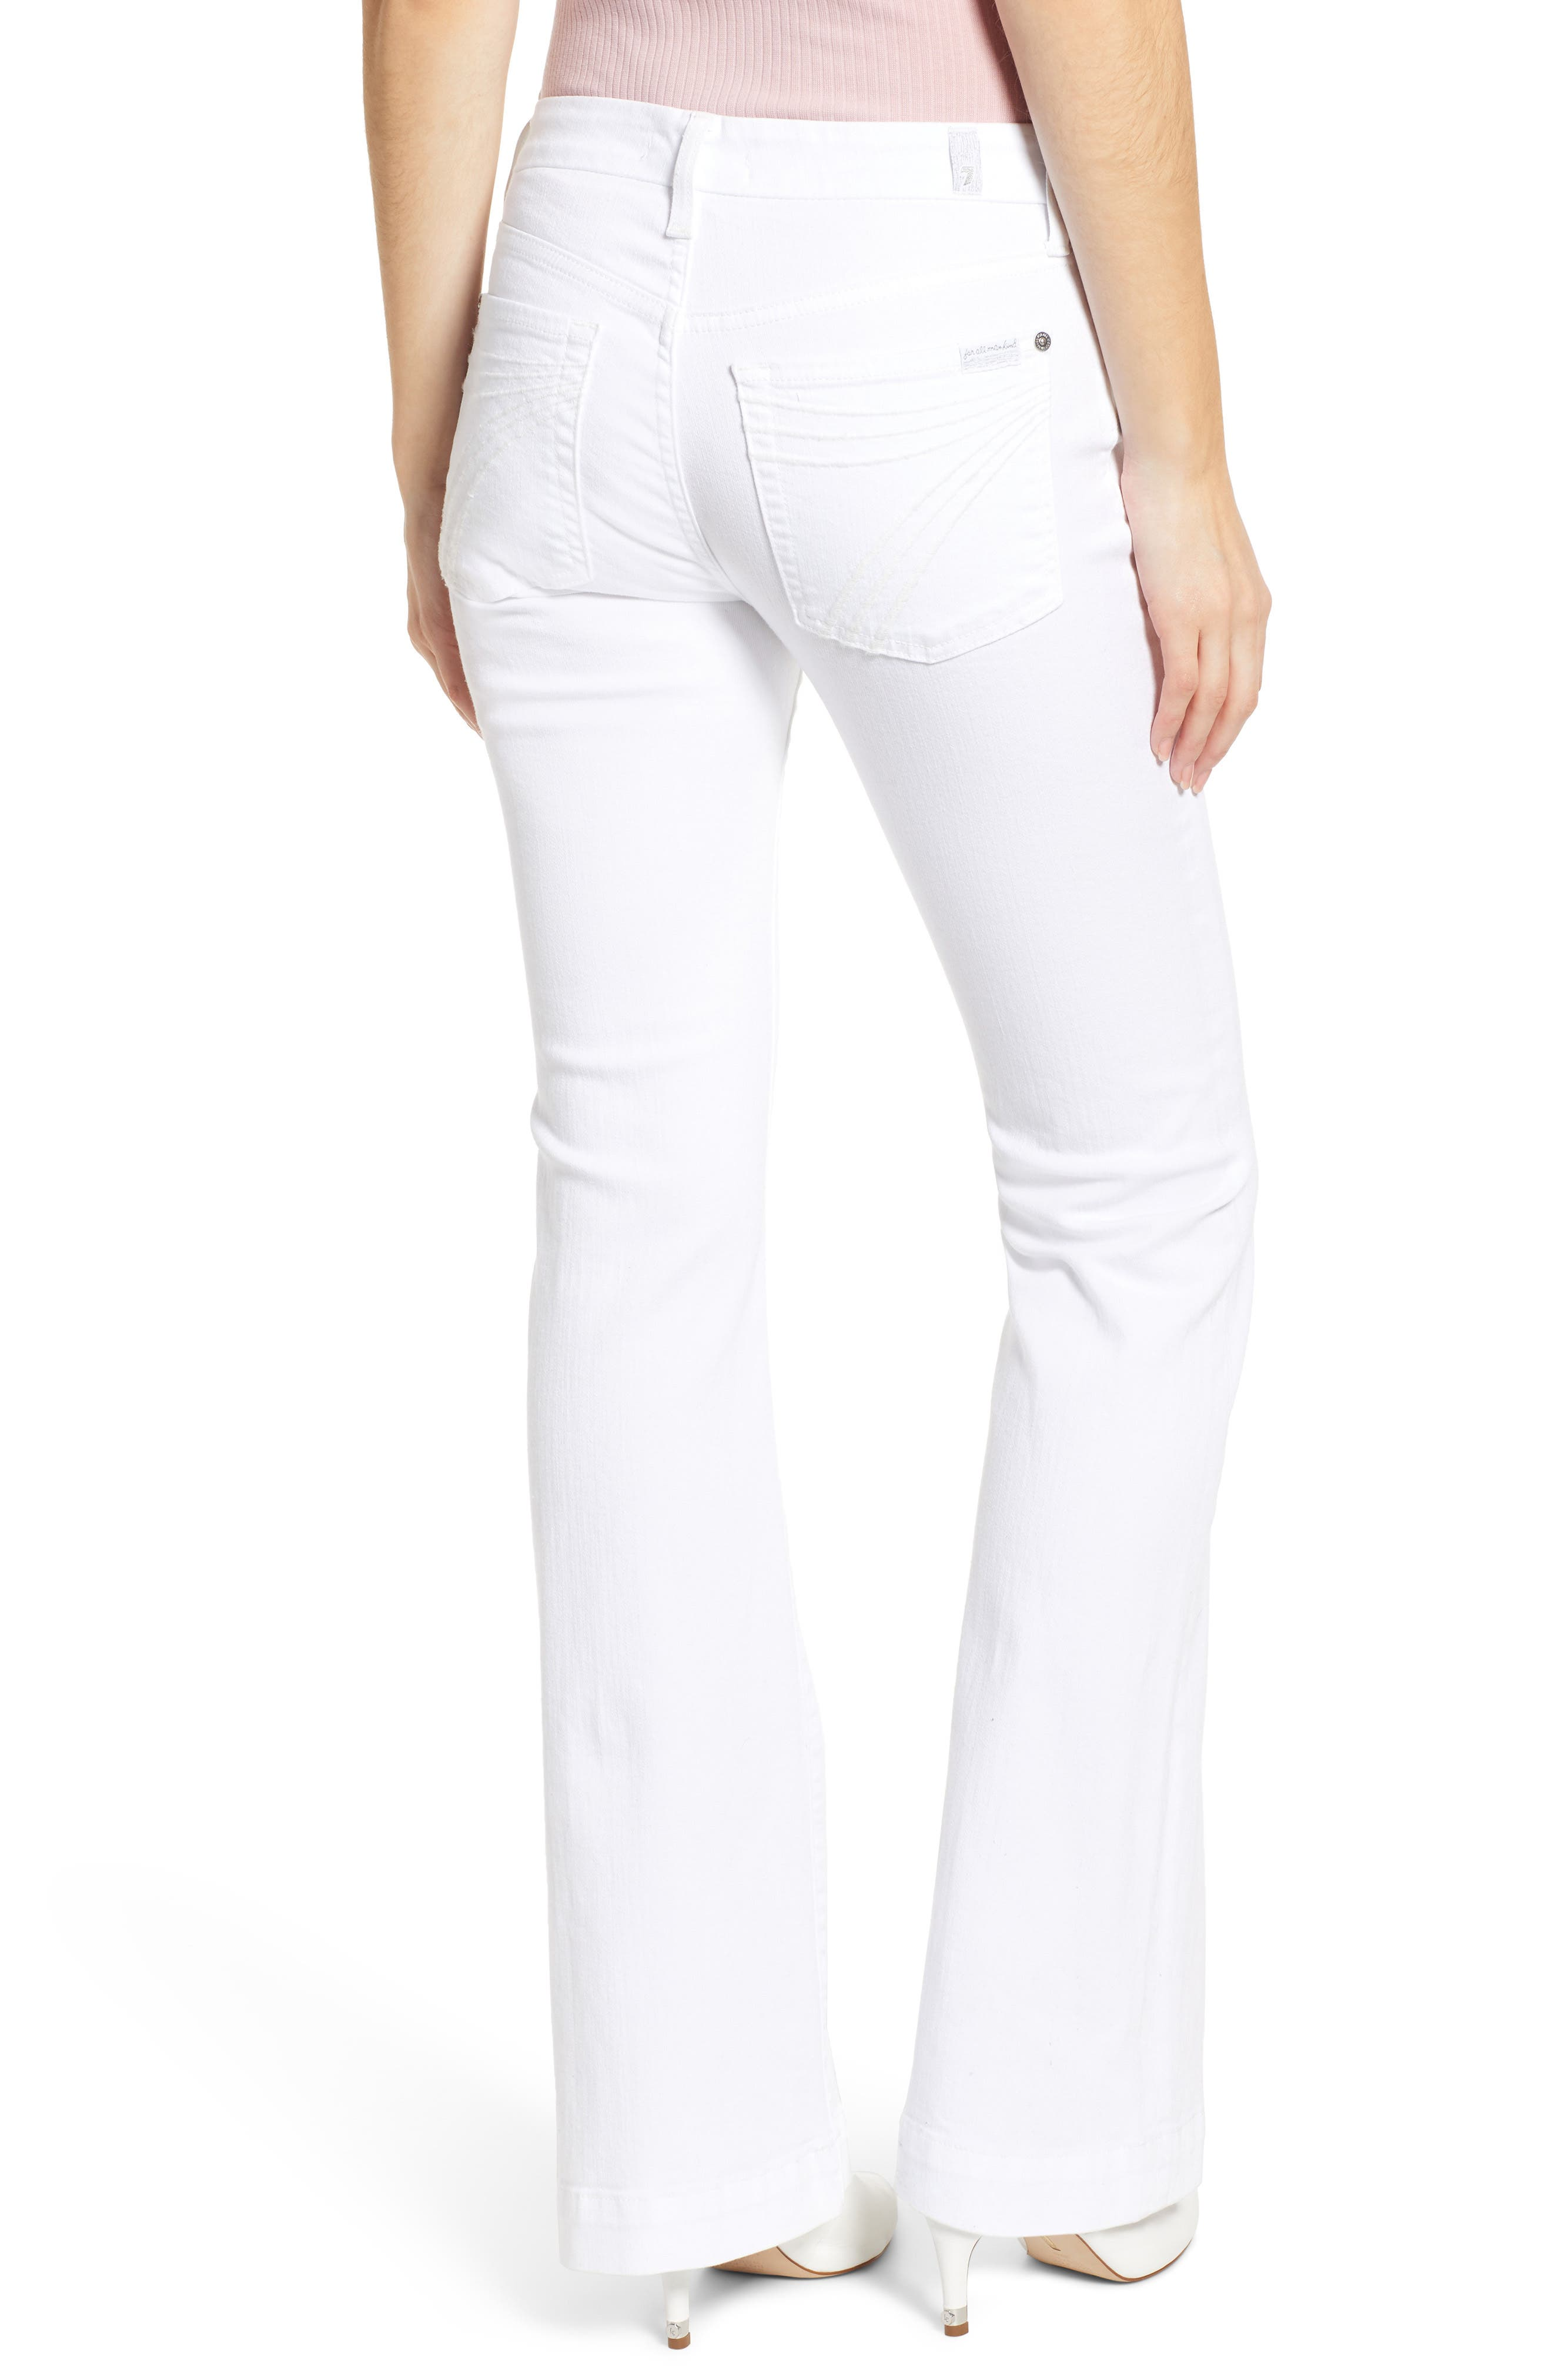 7 FOR ALL MANKIND<SUP>®</SUP>, Dojo Flare Jeans, Alternate thumbnail 2, color, WHITE RUNWAY DENIM